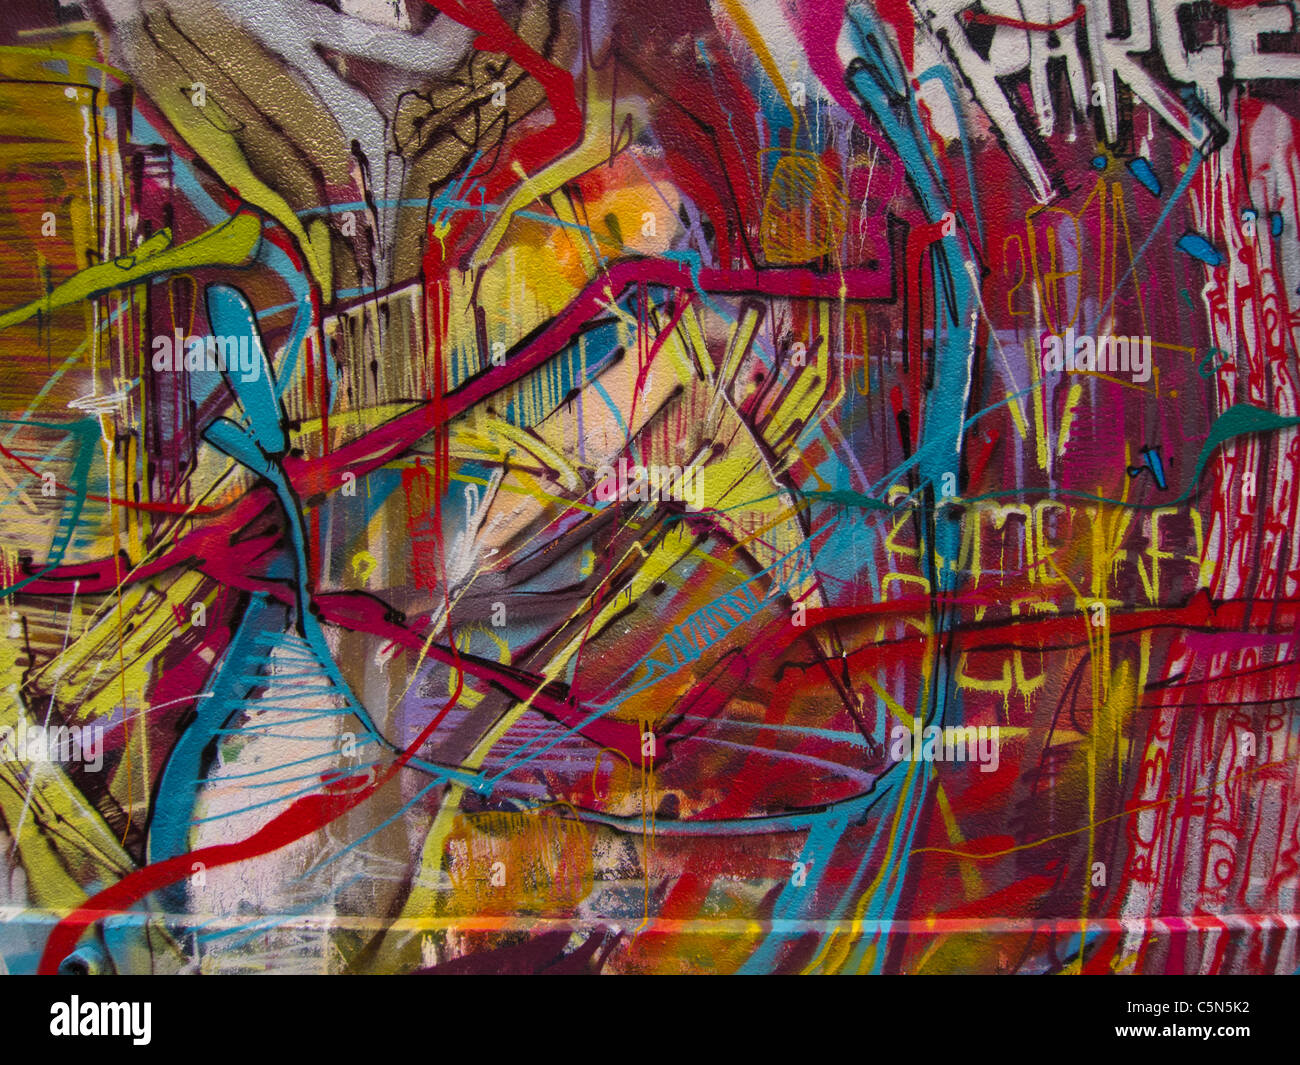 graffiti v modern art Graffiti art: a brief history of the controversial form from the battlefields of world war ii to the 21st-century 5 train, time out tracks the evolution of graffiti art.